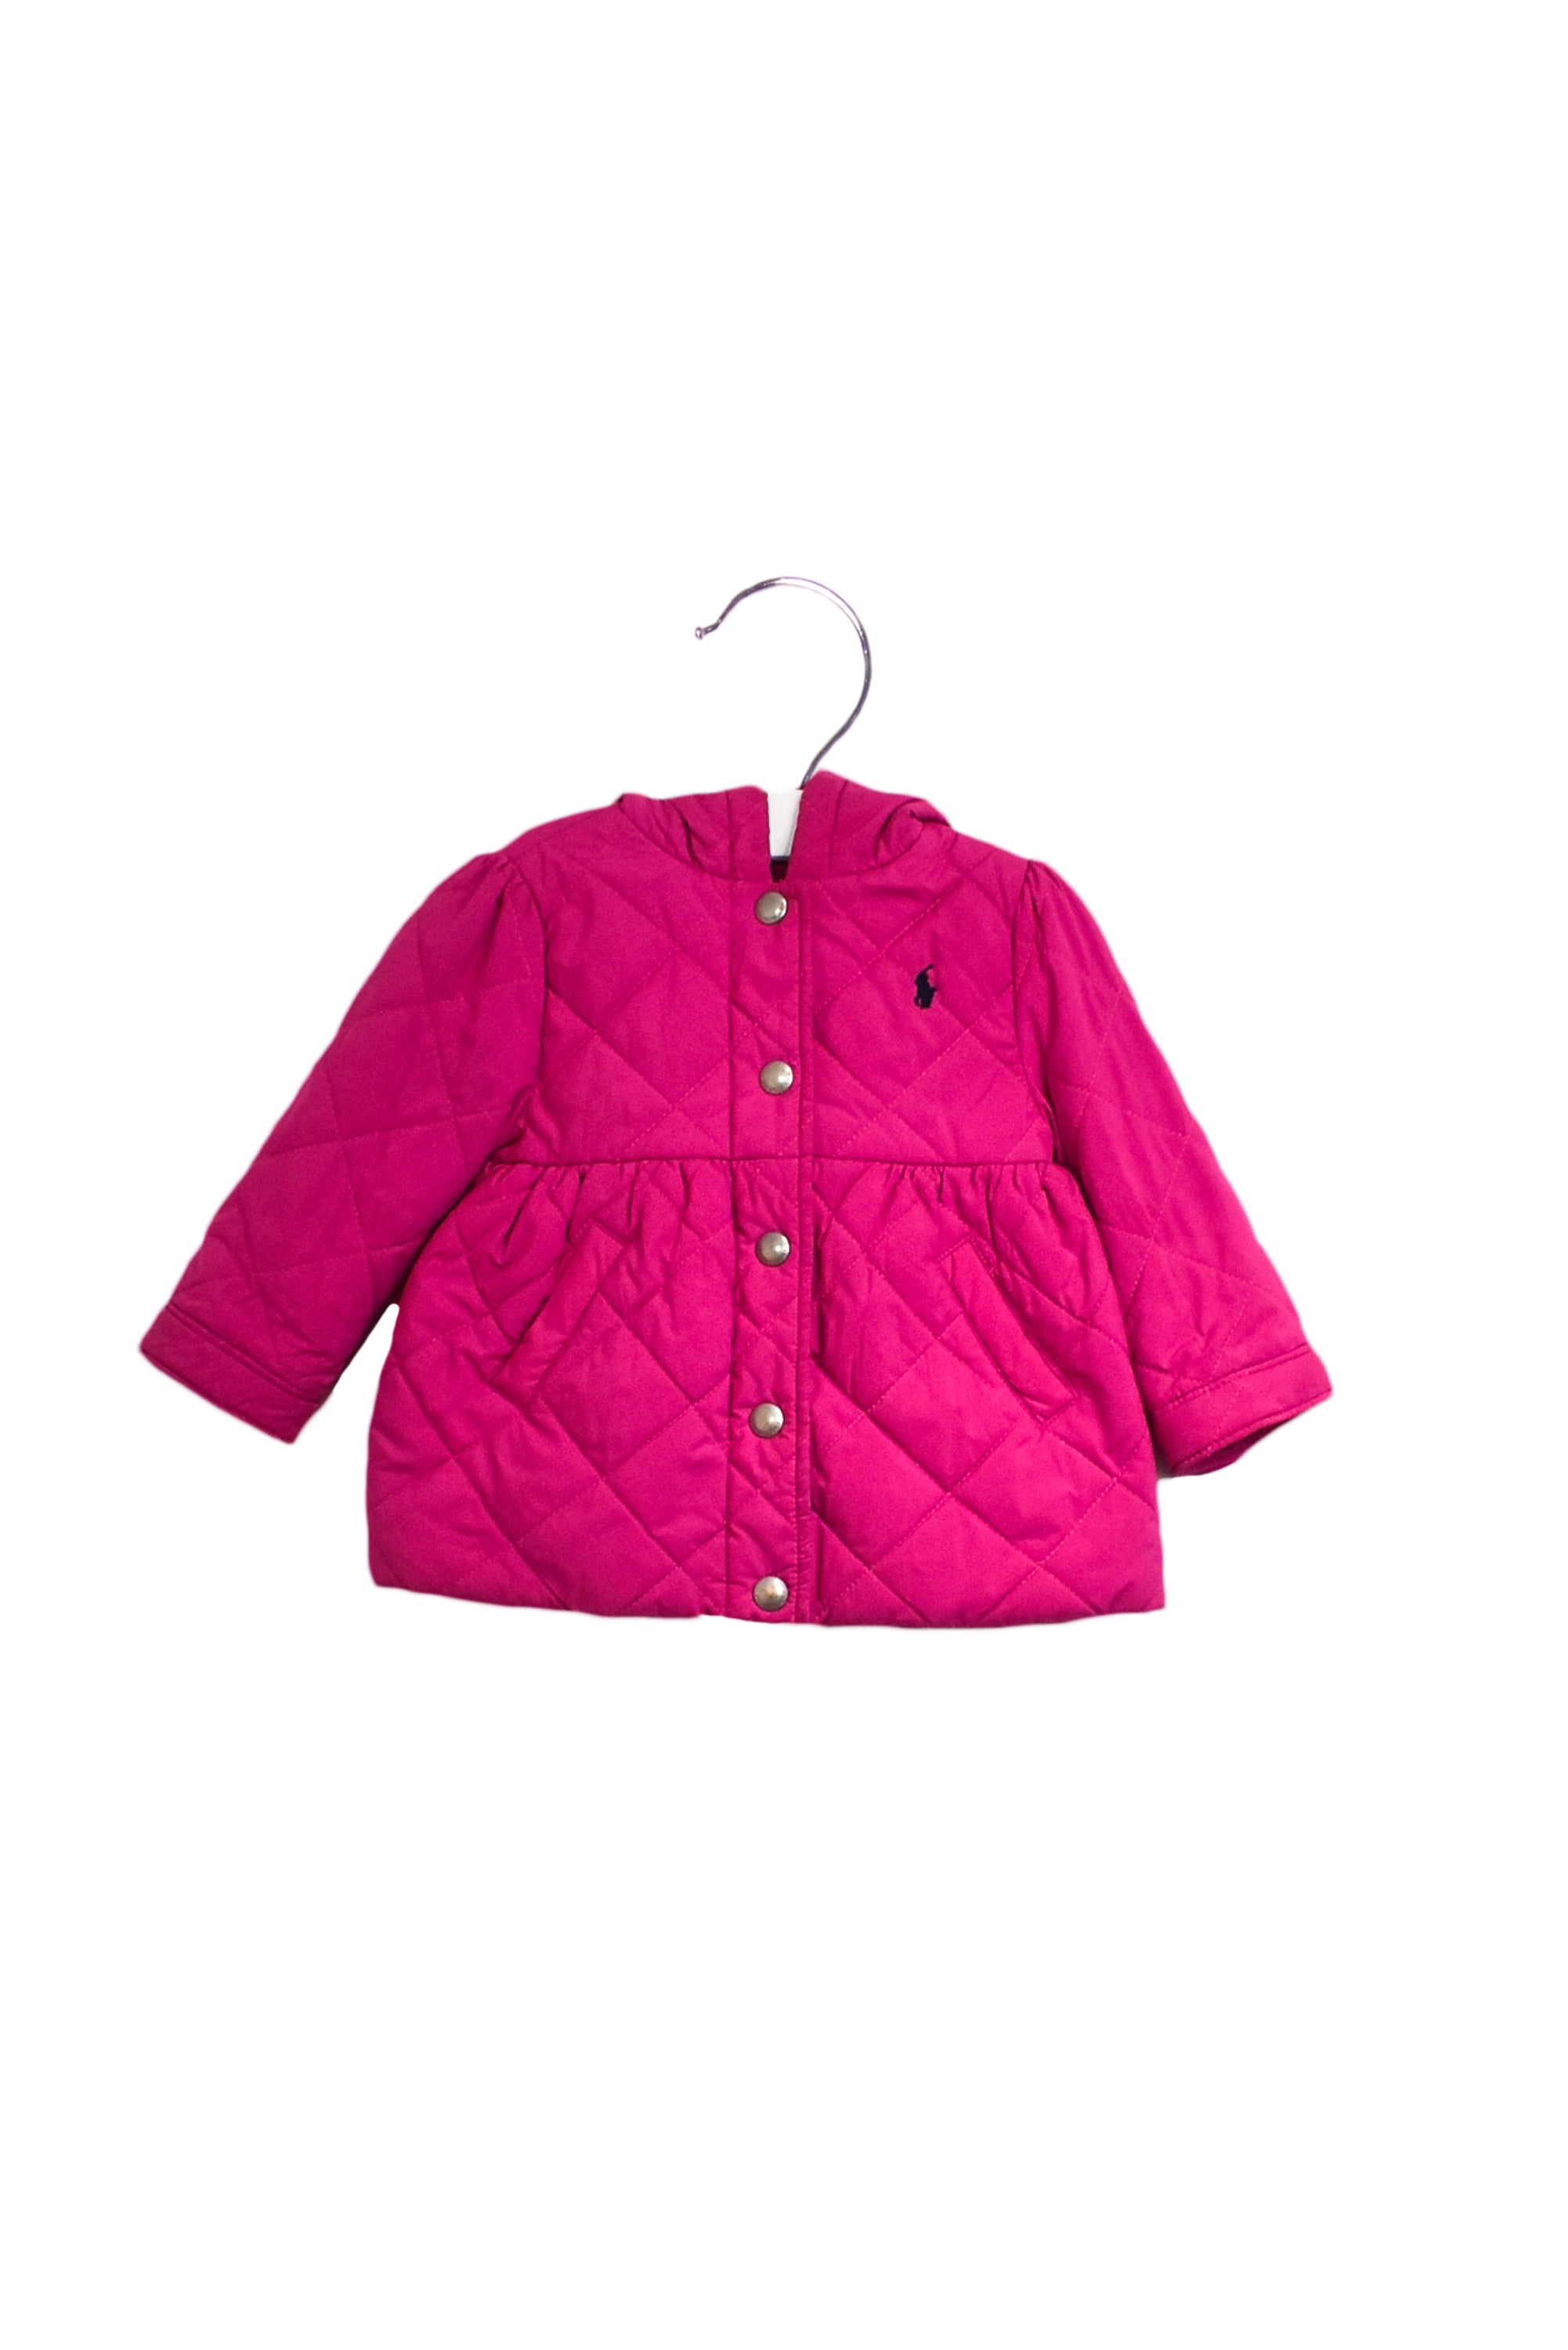 22214a929 10024724 Ralph Lauren Baby~Quilted Jacket 12M at Retykle